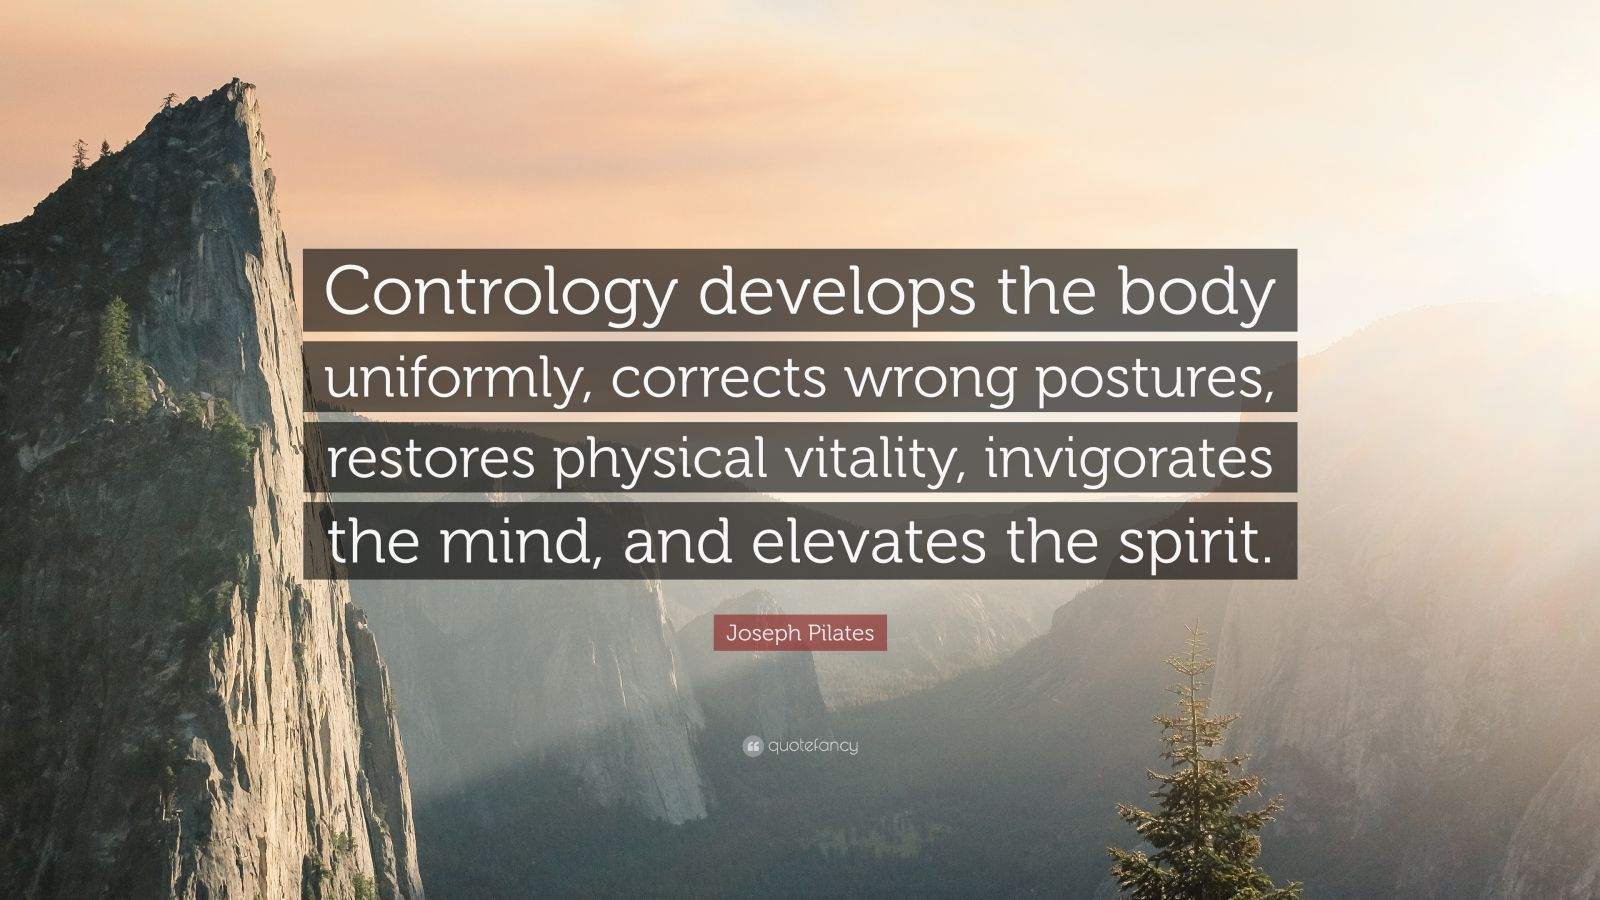 """Joseph Pilates Quote: """"Contrology develops the body uniformly, corrects wrong postures, restores physical vitality, invigorates the mind, and elevates the spirit."""""""